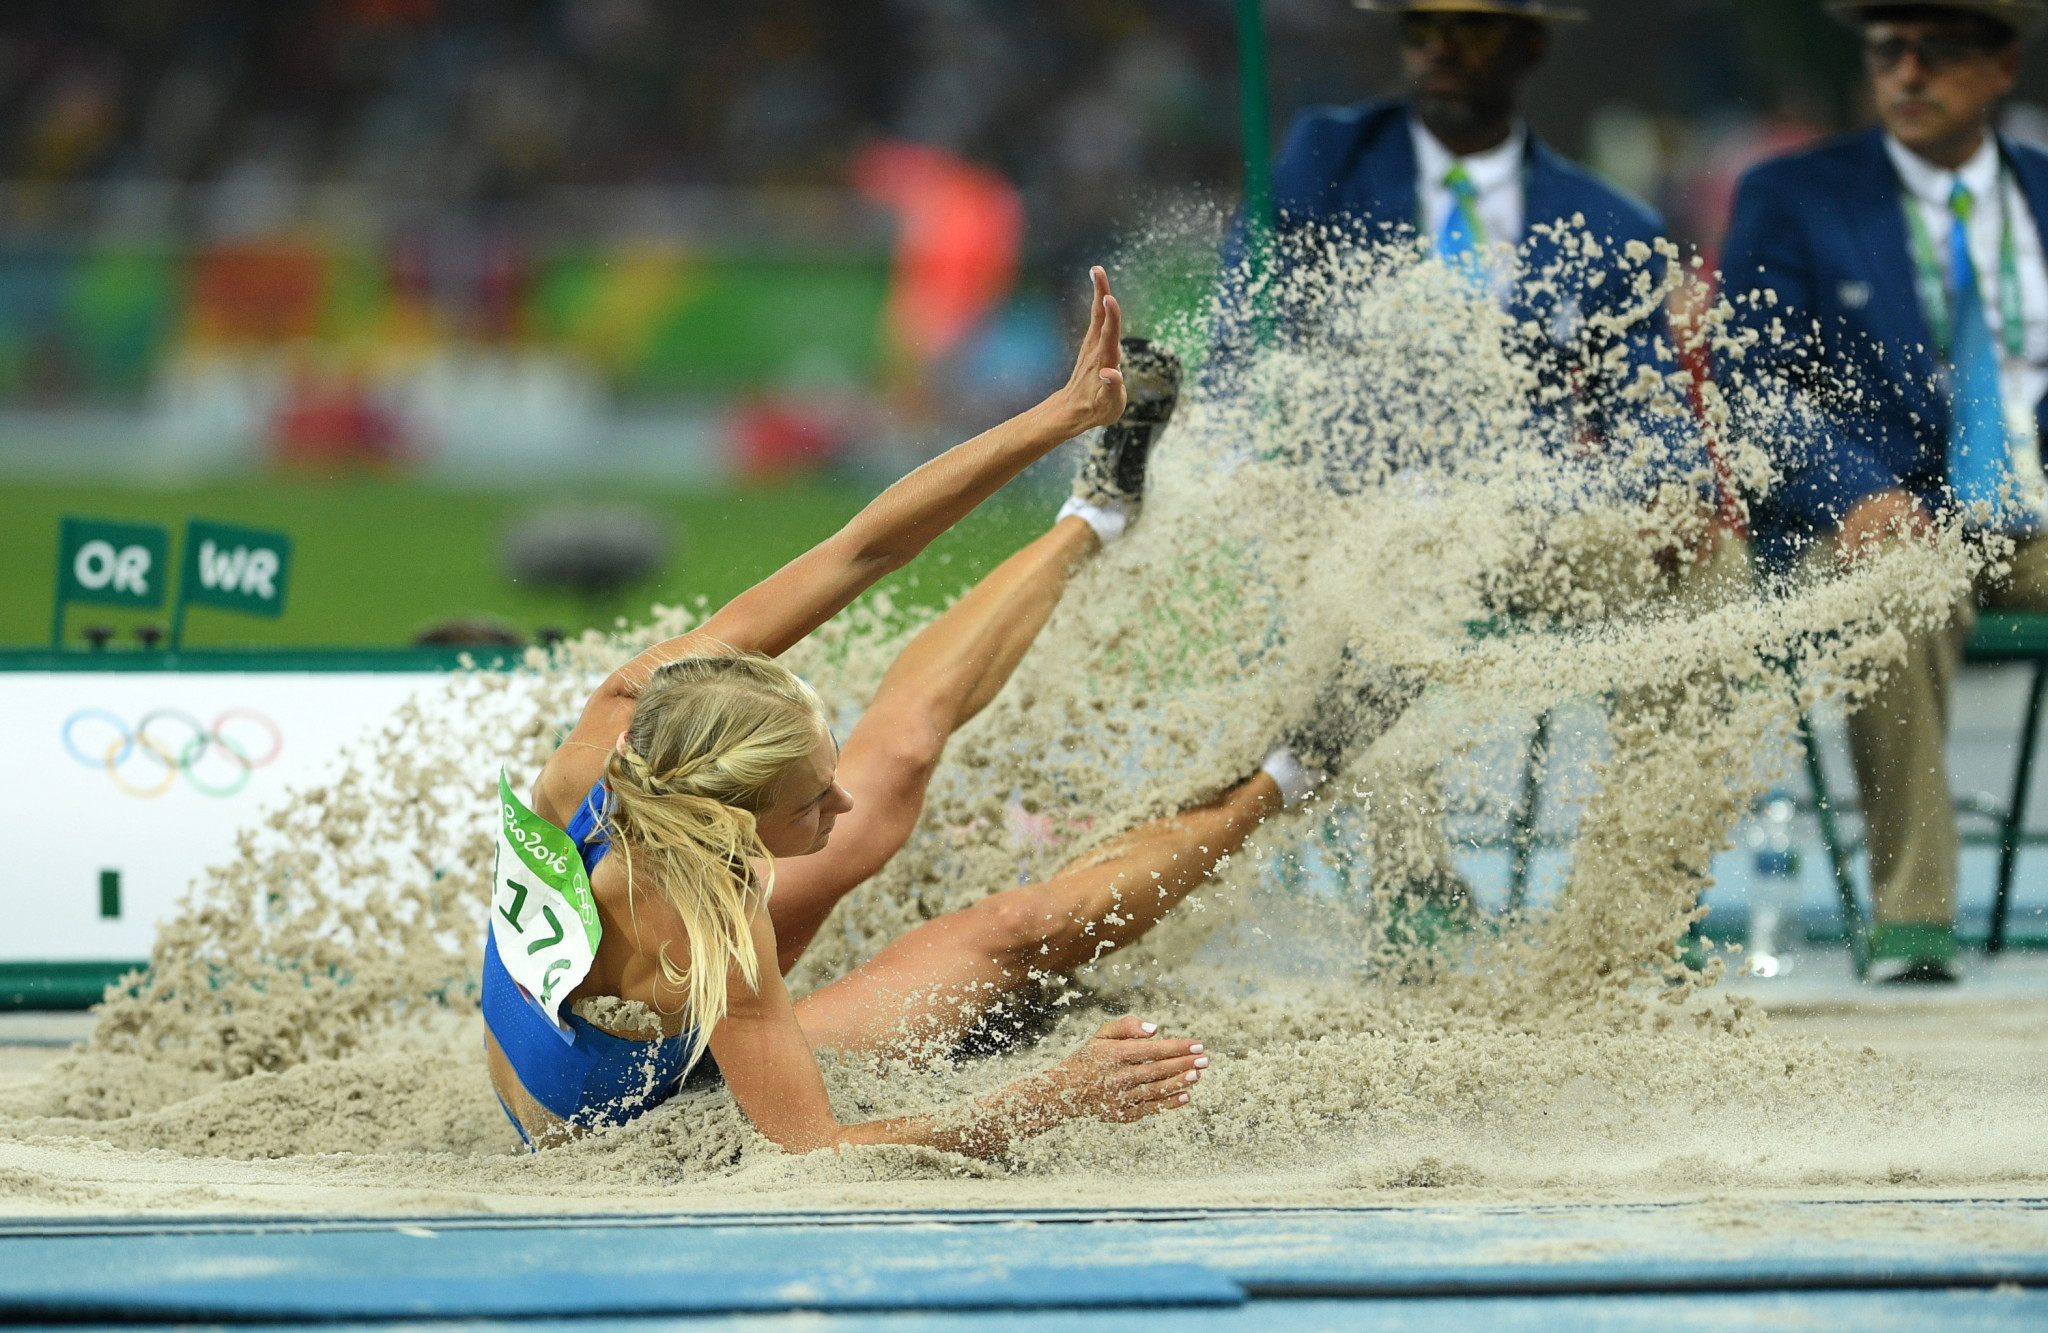 Russia's Darya Klishina competes in the Women's Long Jump Final during the athletics event at the Rio 2016 Olympic Games at the Olympic Stadium ©Getty Images